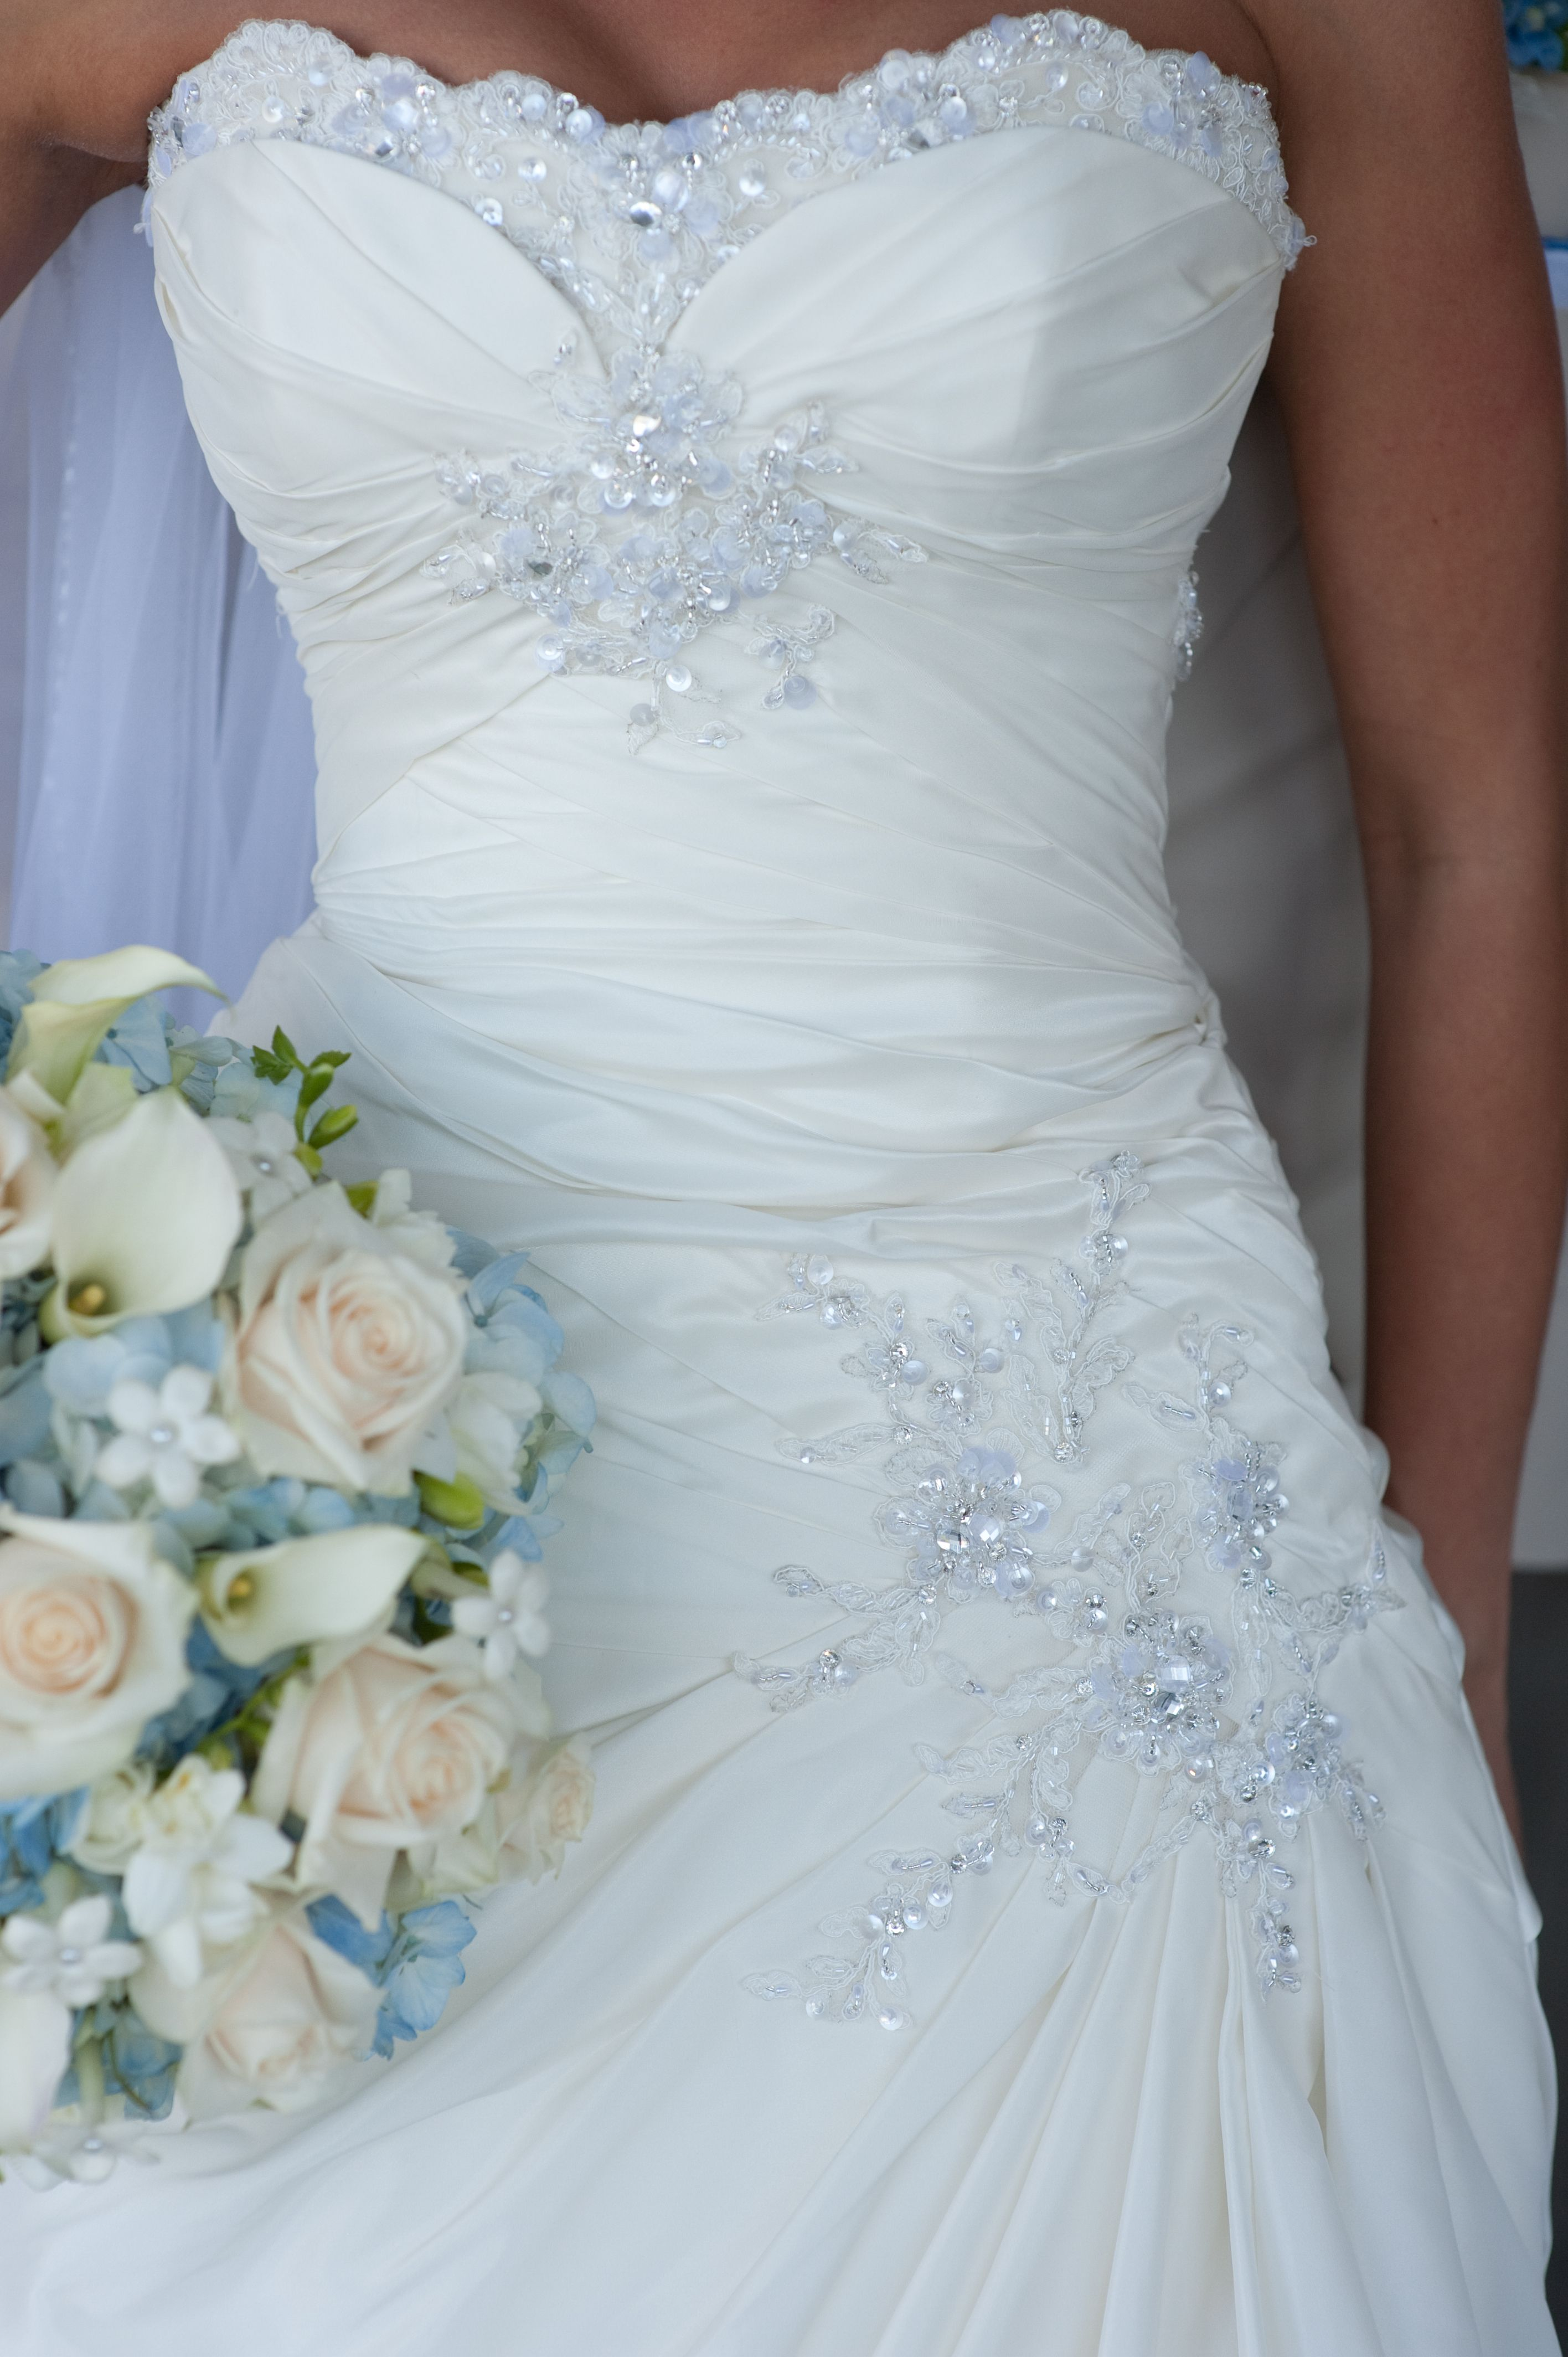 Blinged out wedding dress  I love this dress because there is not too much or too little of